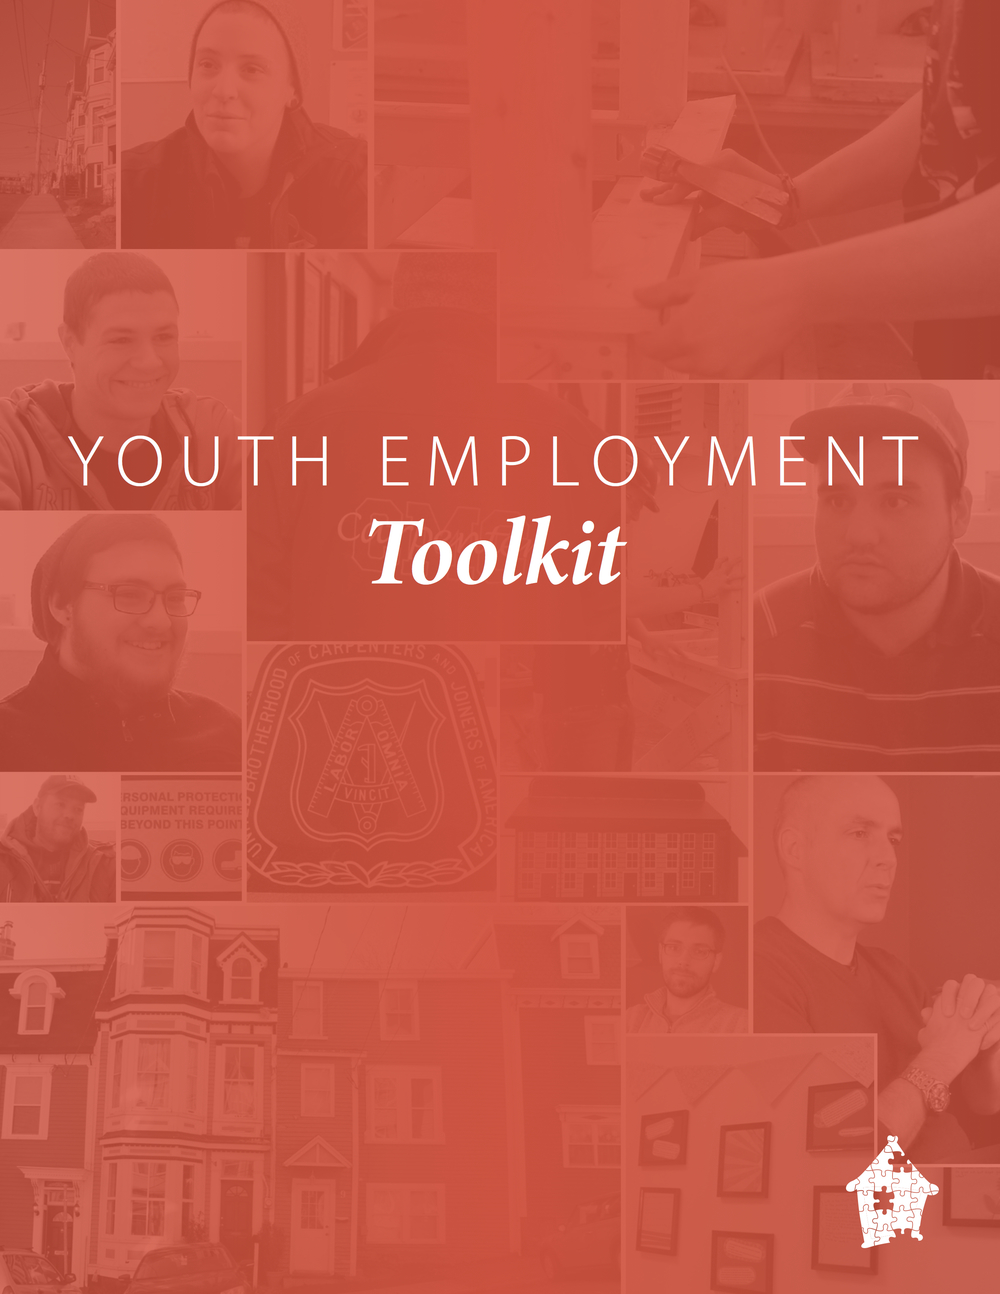 Youth Employment Toolkit - copie.jpg